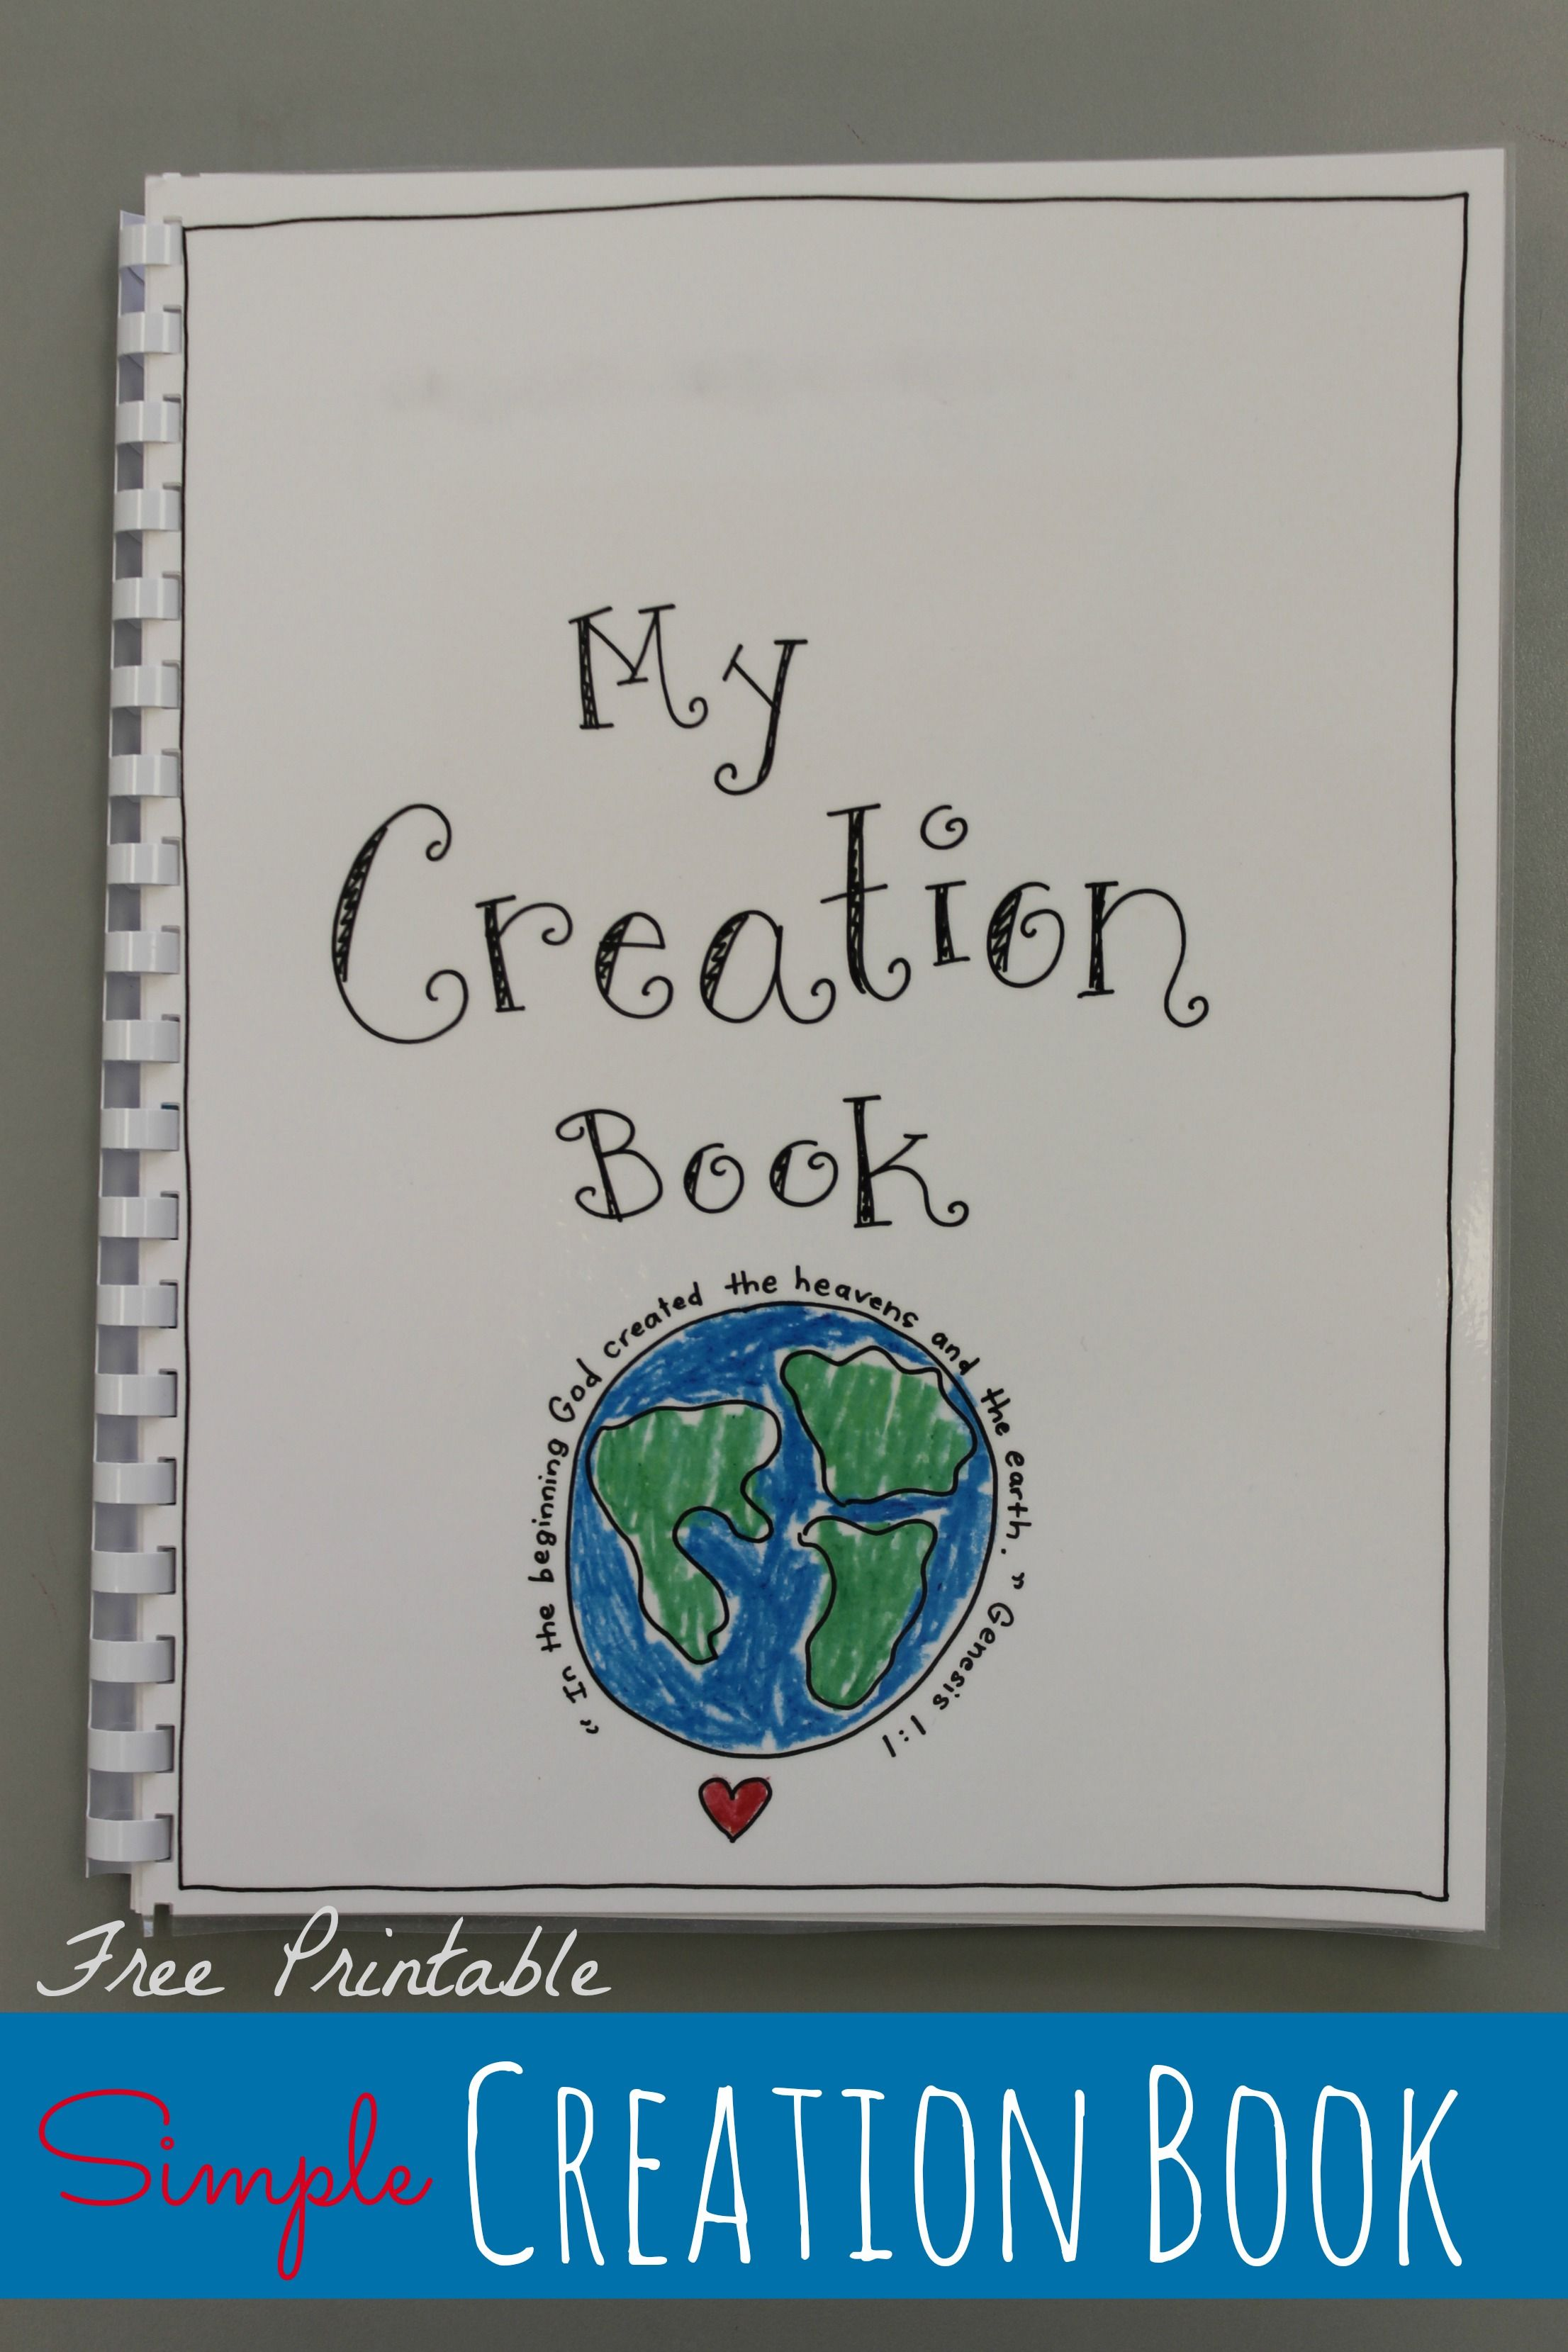 Free printable coloring pages gods creation - Creation Book Free Printable